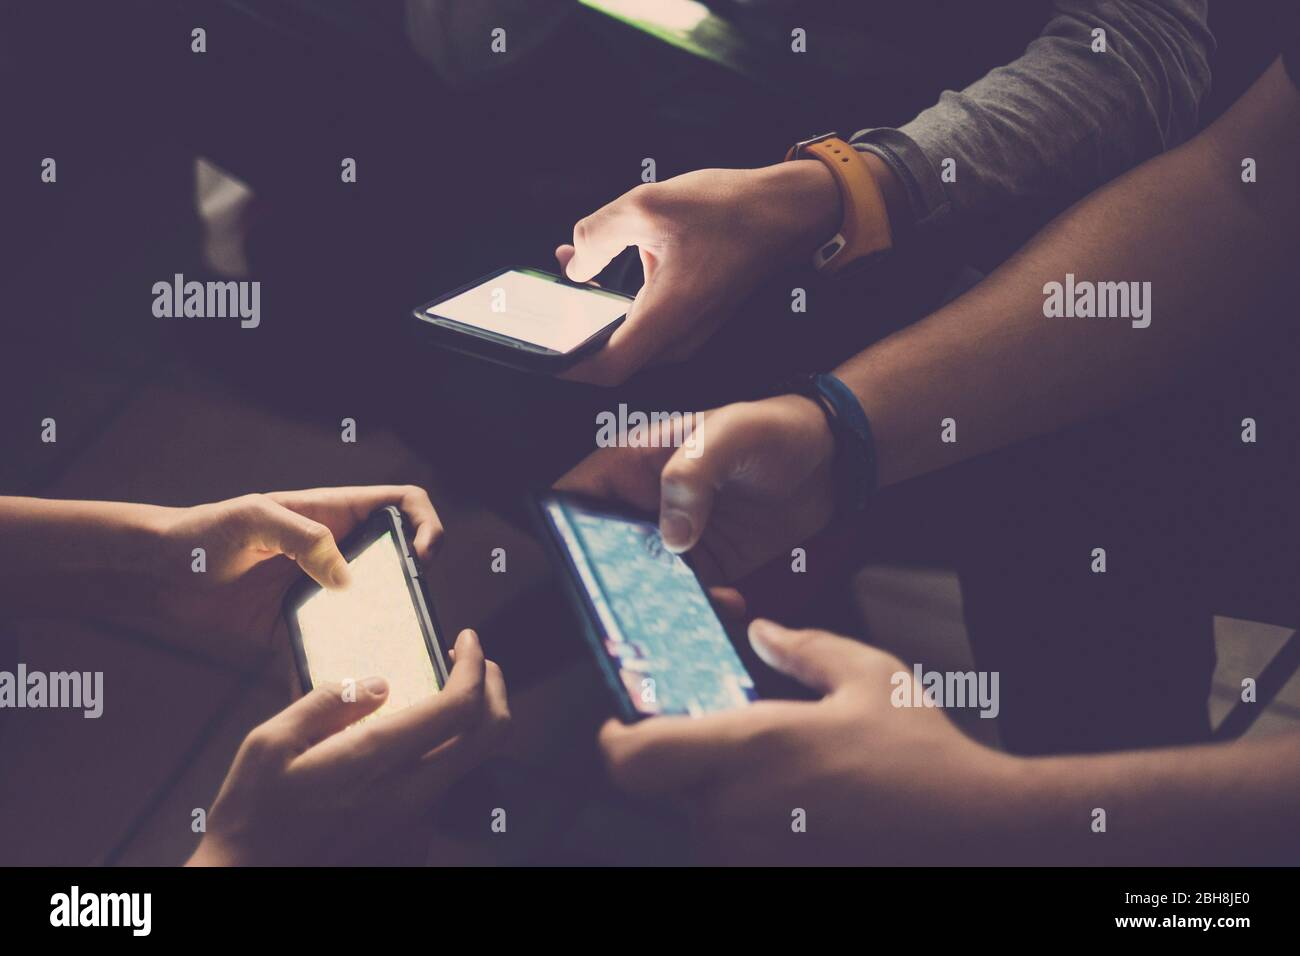 Three young caucasian teenager men play all together with mobile phone device to video games like clan or team - usual activity for millennial people at home - technology addicted people concept Stock Photo